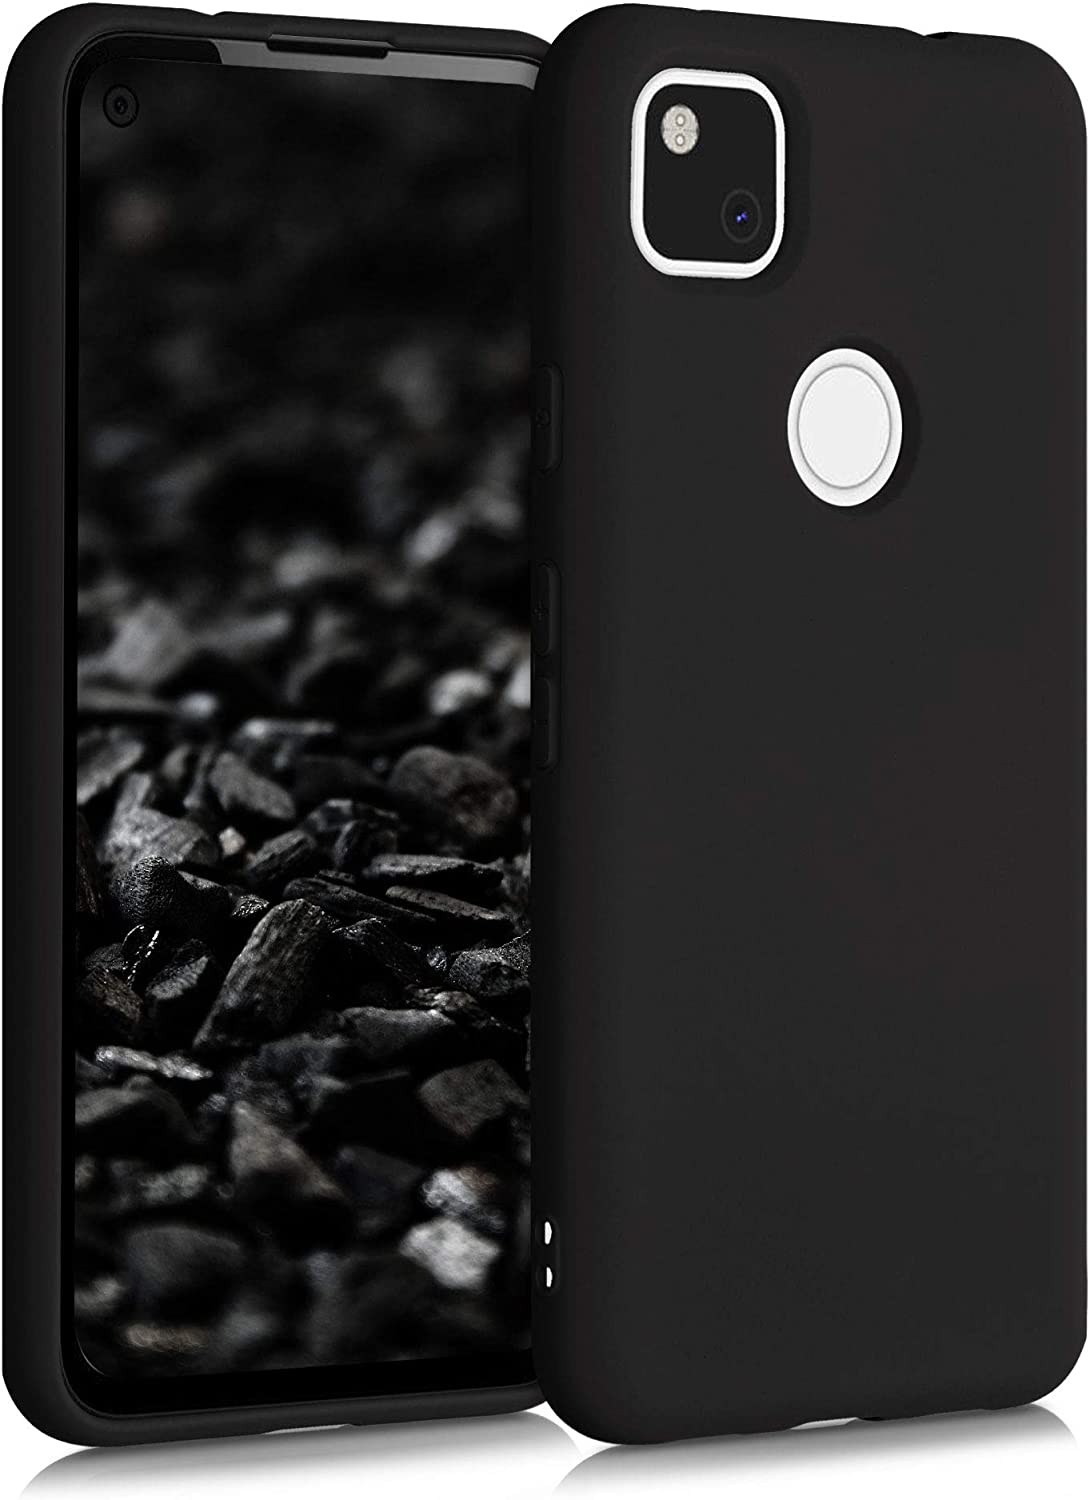 kwmobile Case Compatible with Google Pixel 4a - Case Soft TPU Slim Protective Cover for Phone - Black Matte